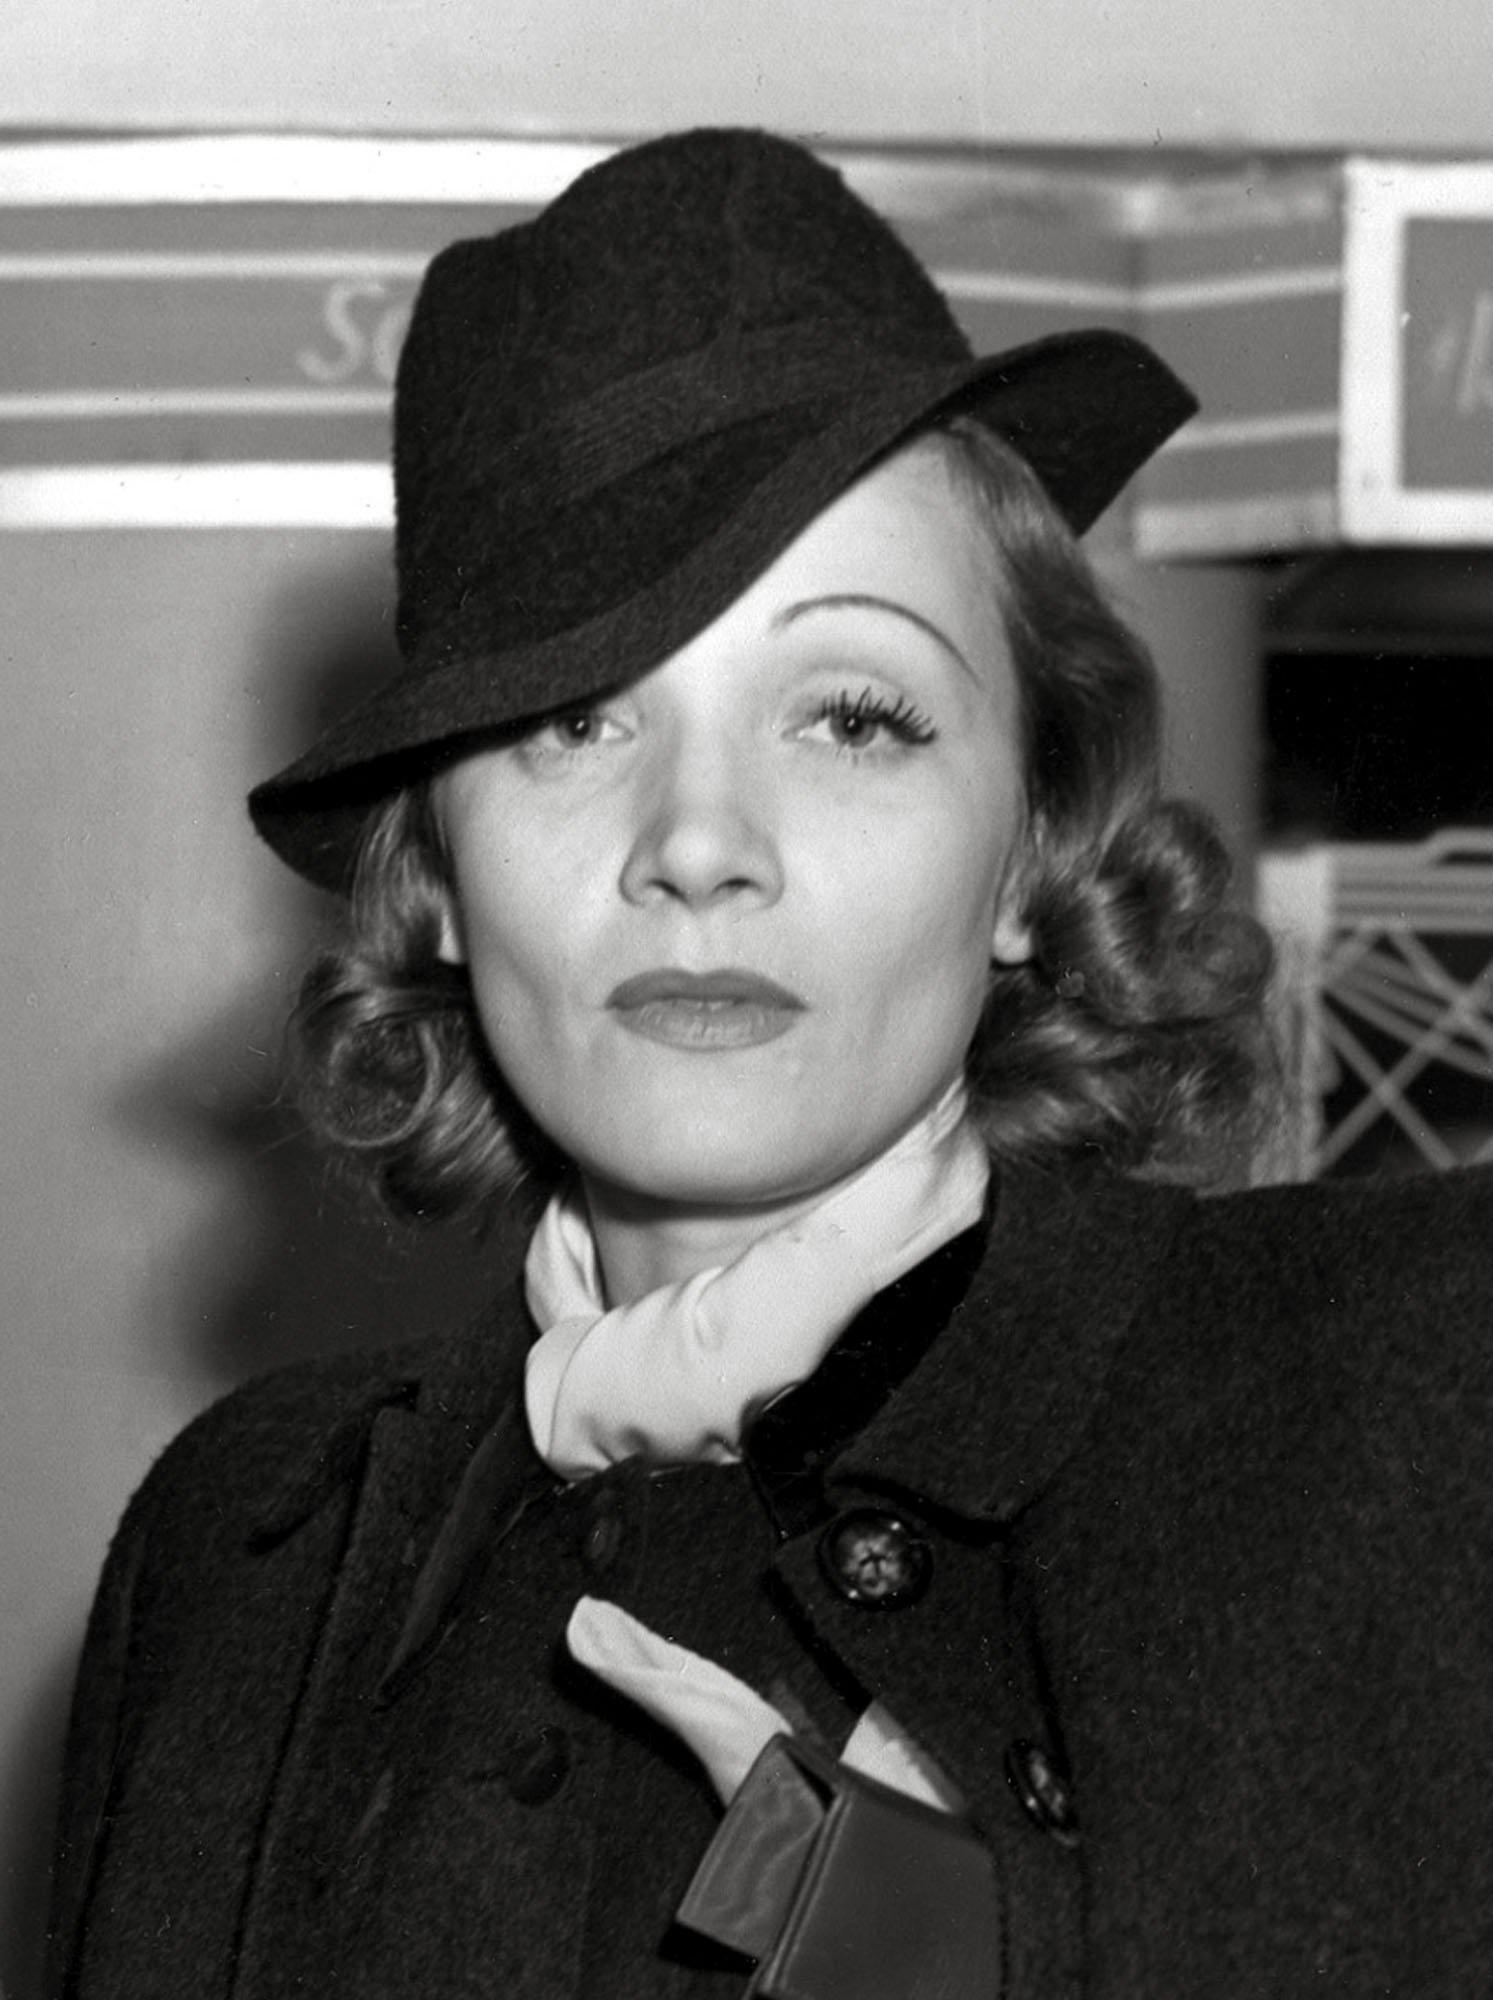 0eaed0b7e5a18168cf12eb0e1538ebf4 Marlene Dietrich celebrated by Google Doodle – here's why the German singer and actress' 116th birthday is being marked